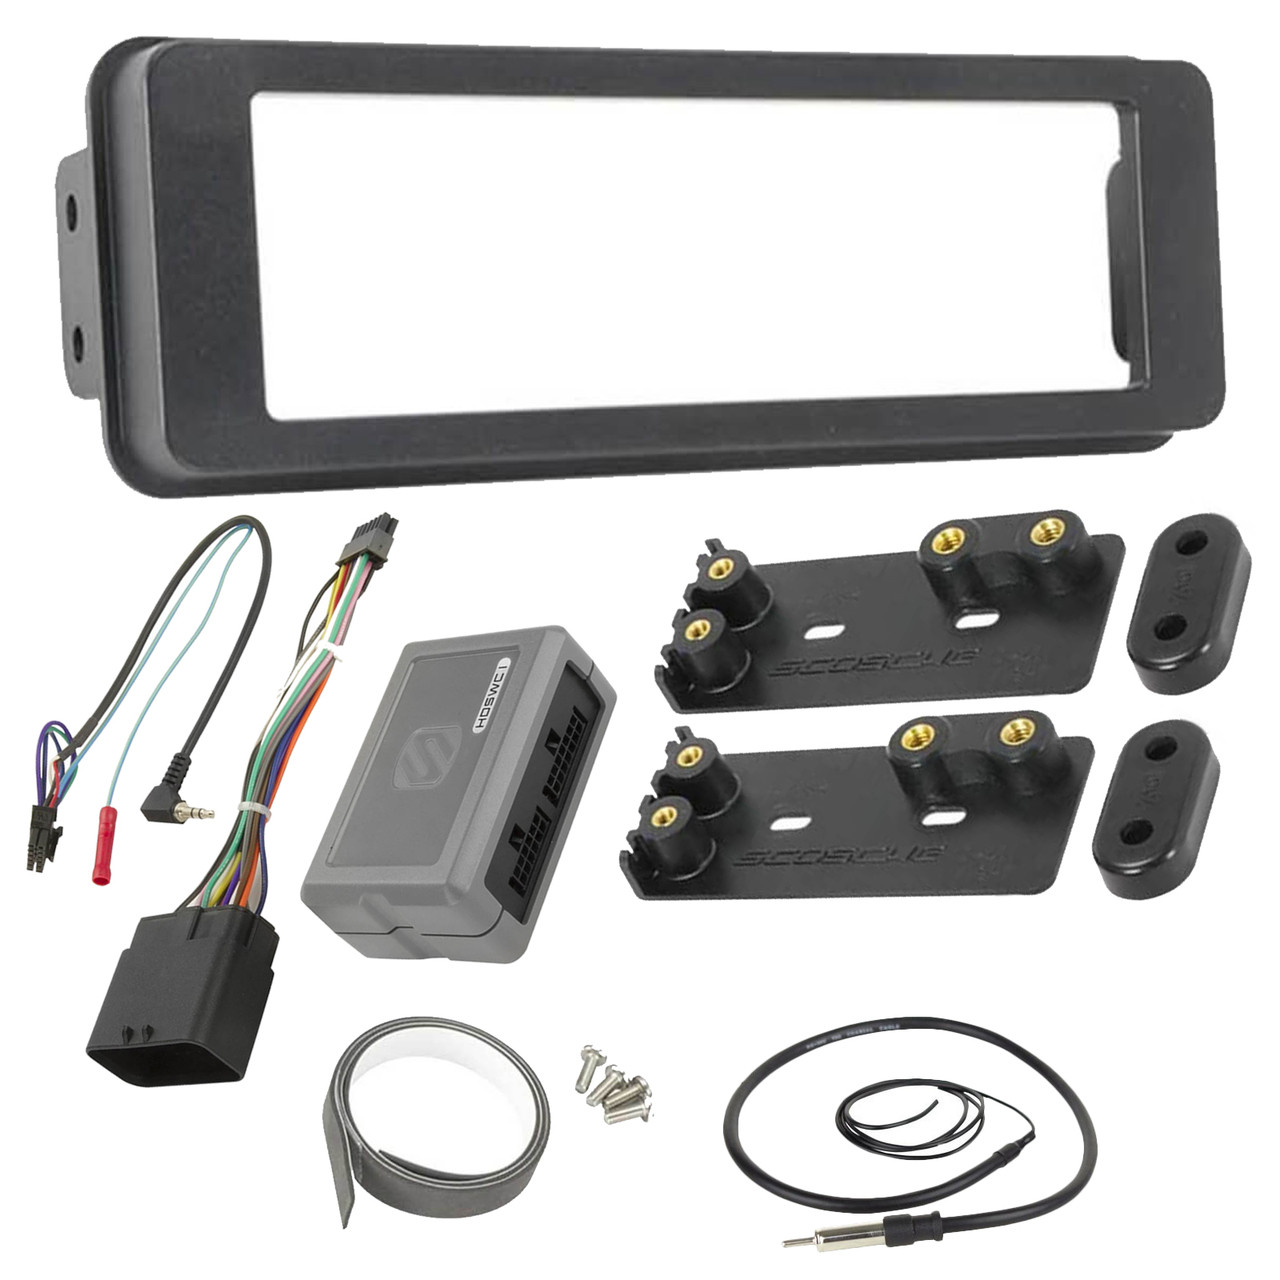 small resolution of scosche hd7000b 1996 up harley davidson stereo install dash kit with 1992 s10 radio harness scosche wiring harness harley